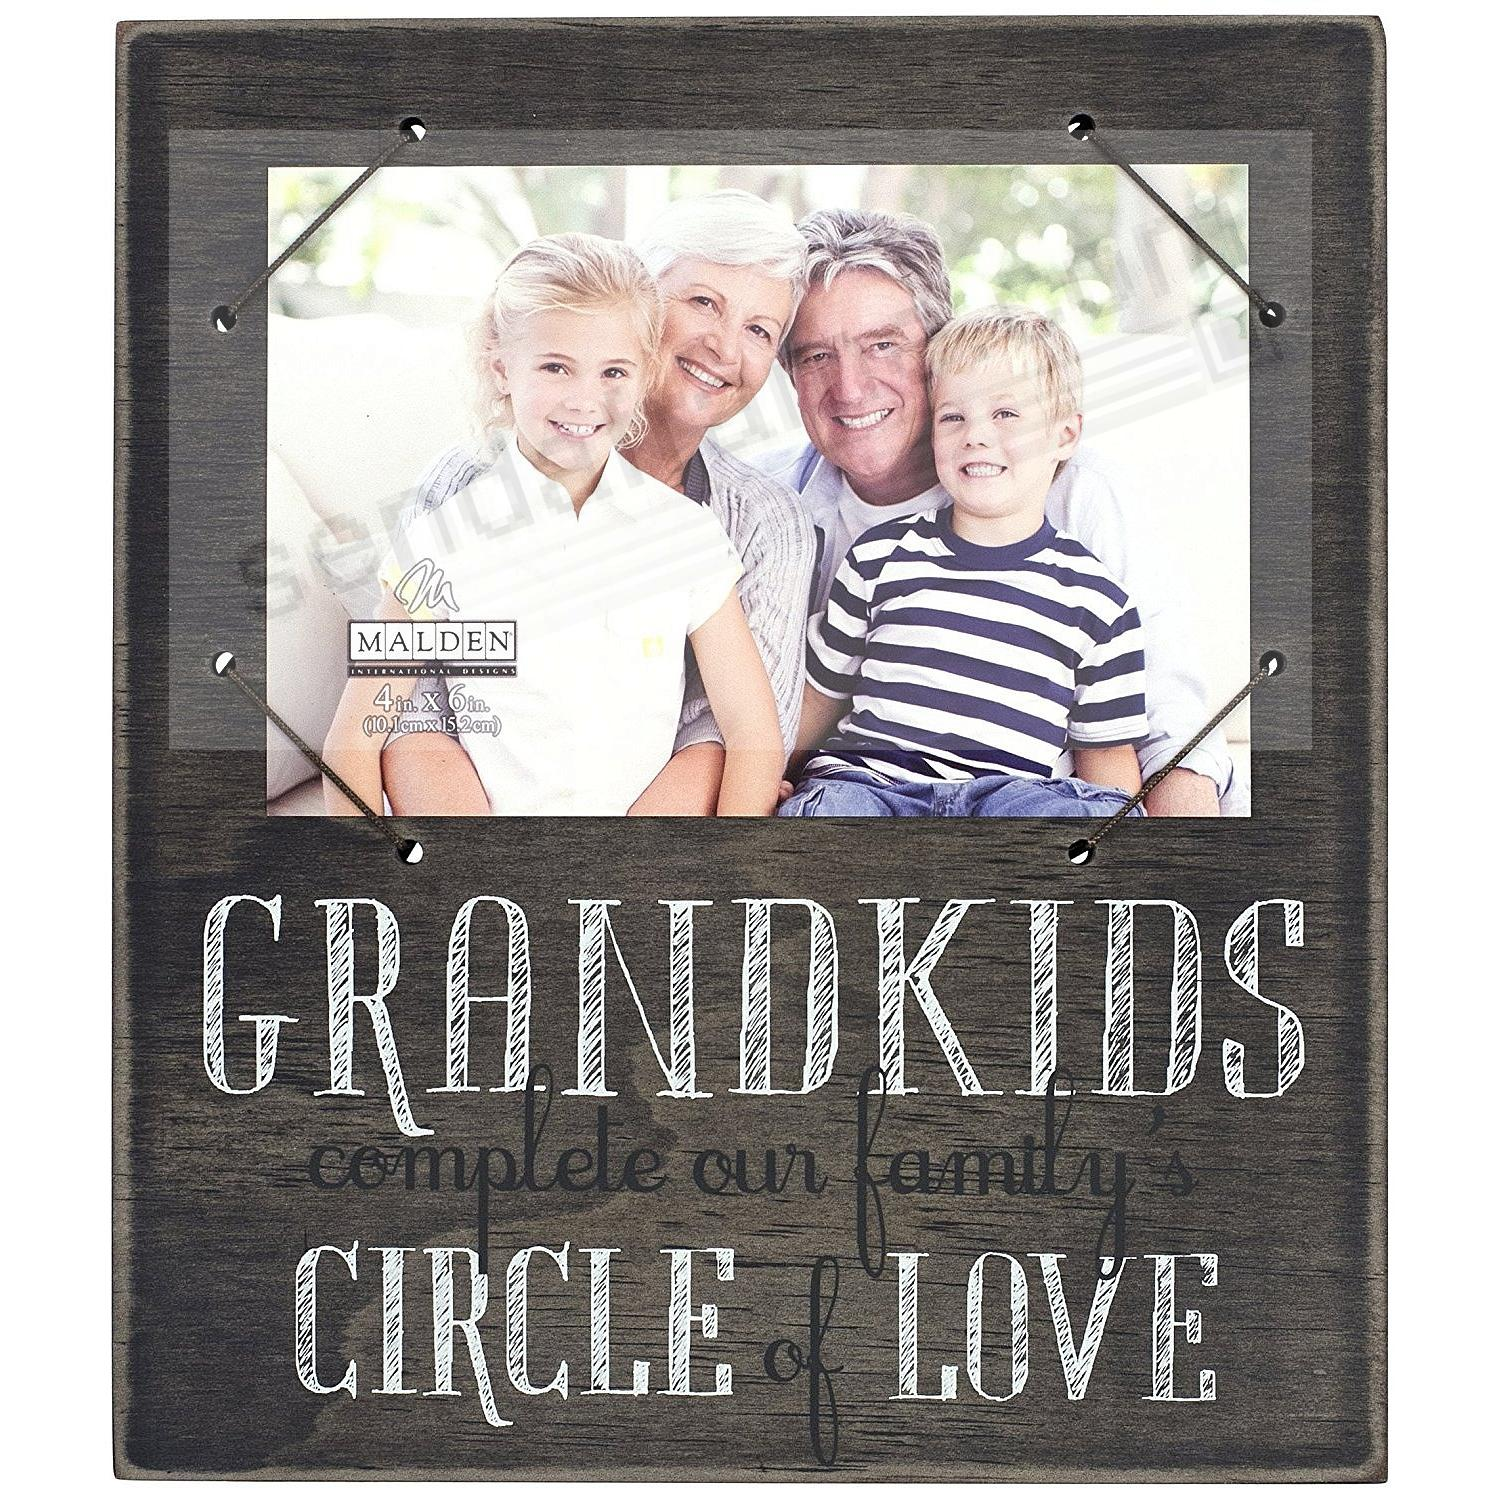 GRANDKIDS CIRCLE OF LOVE Frame Sign by Malden® - Picture Frames ...